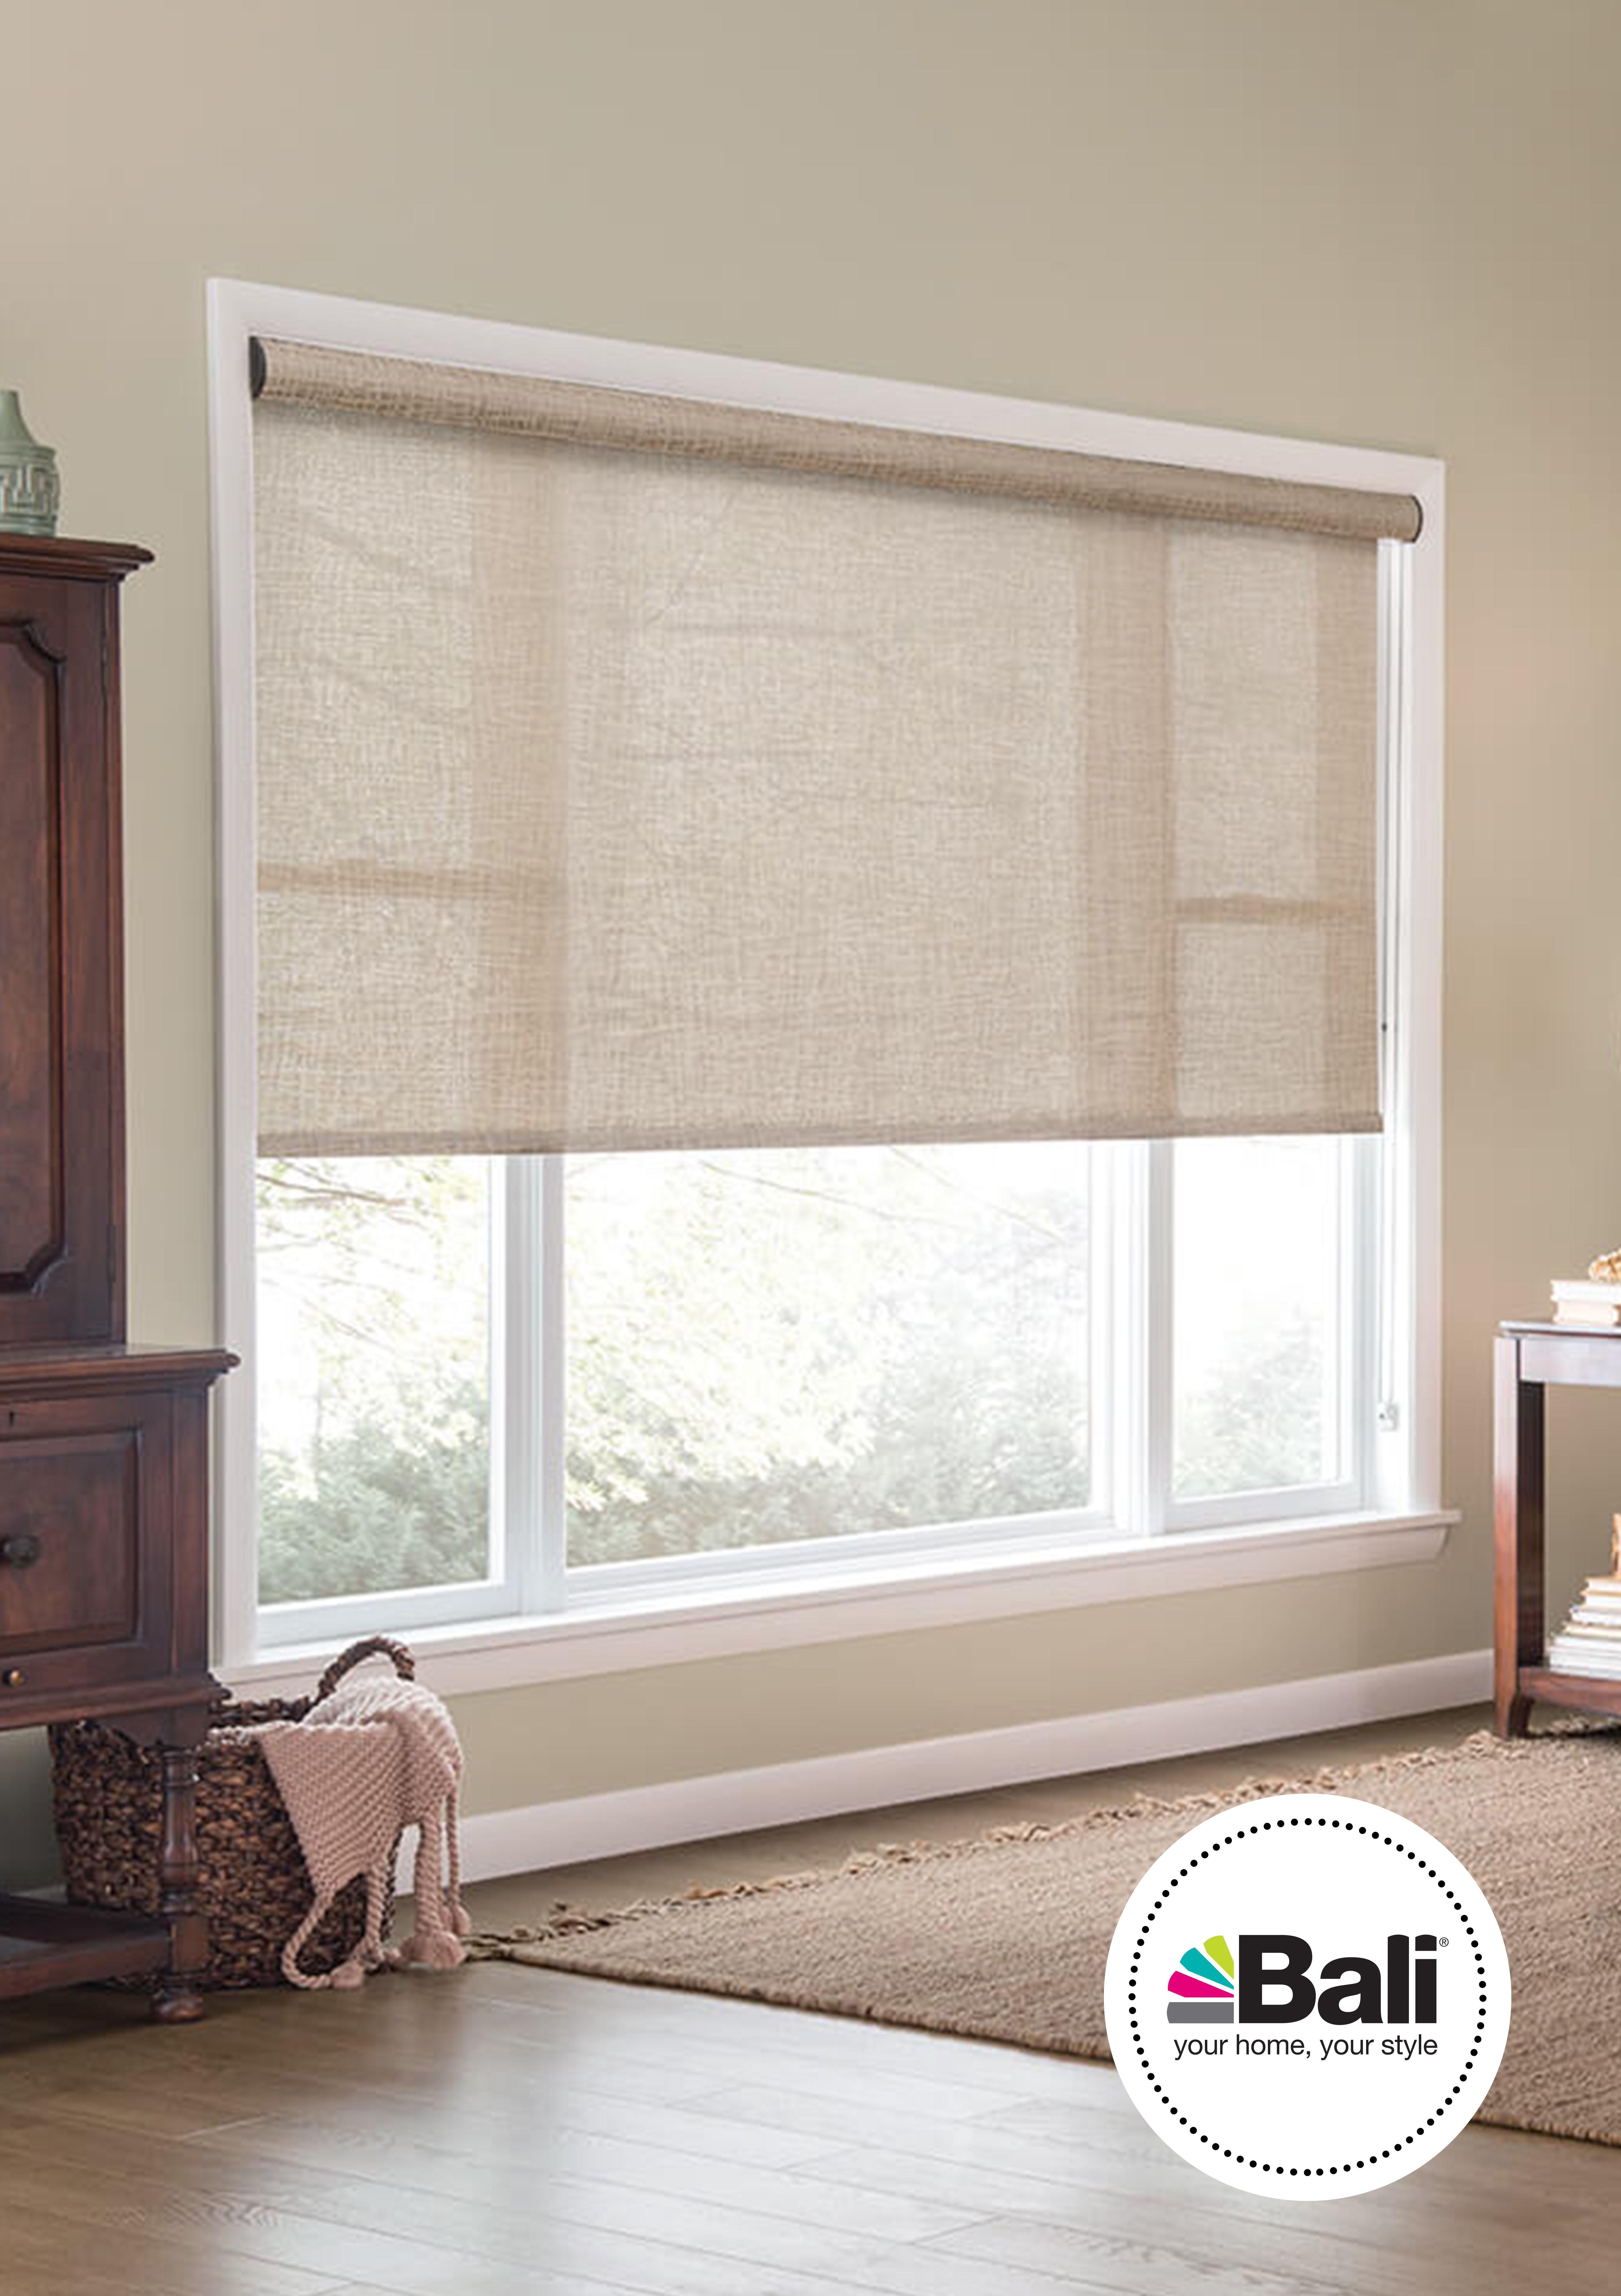 Solar Shades Have A Uniquely Engineered See Through Design That Brings The Outdoors In All Day These Prot Solar Shades Custom Solar Shade Window Roller Shades